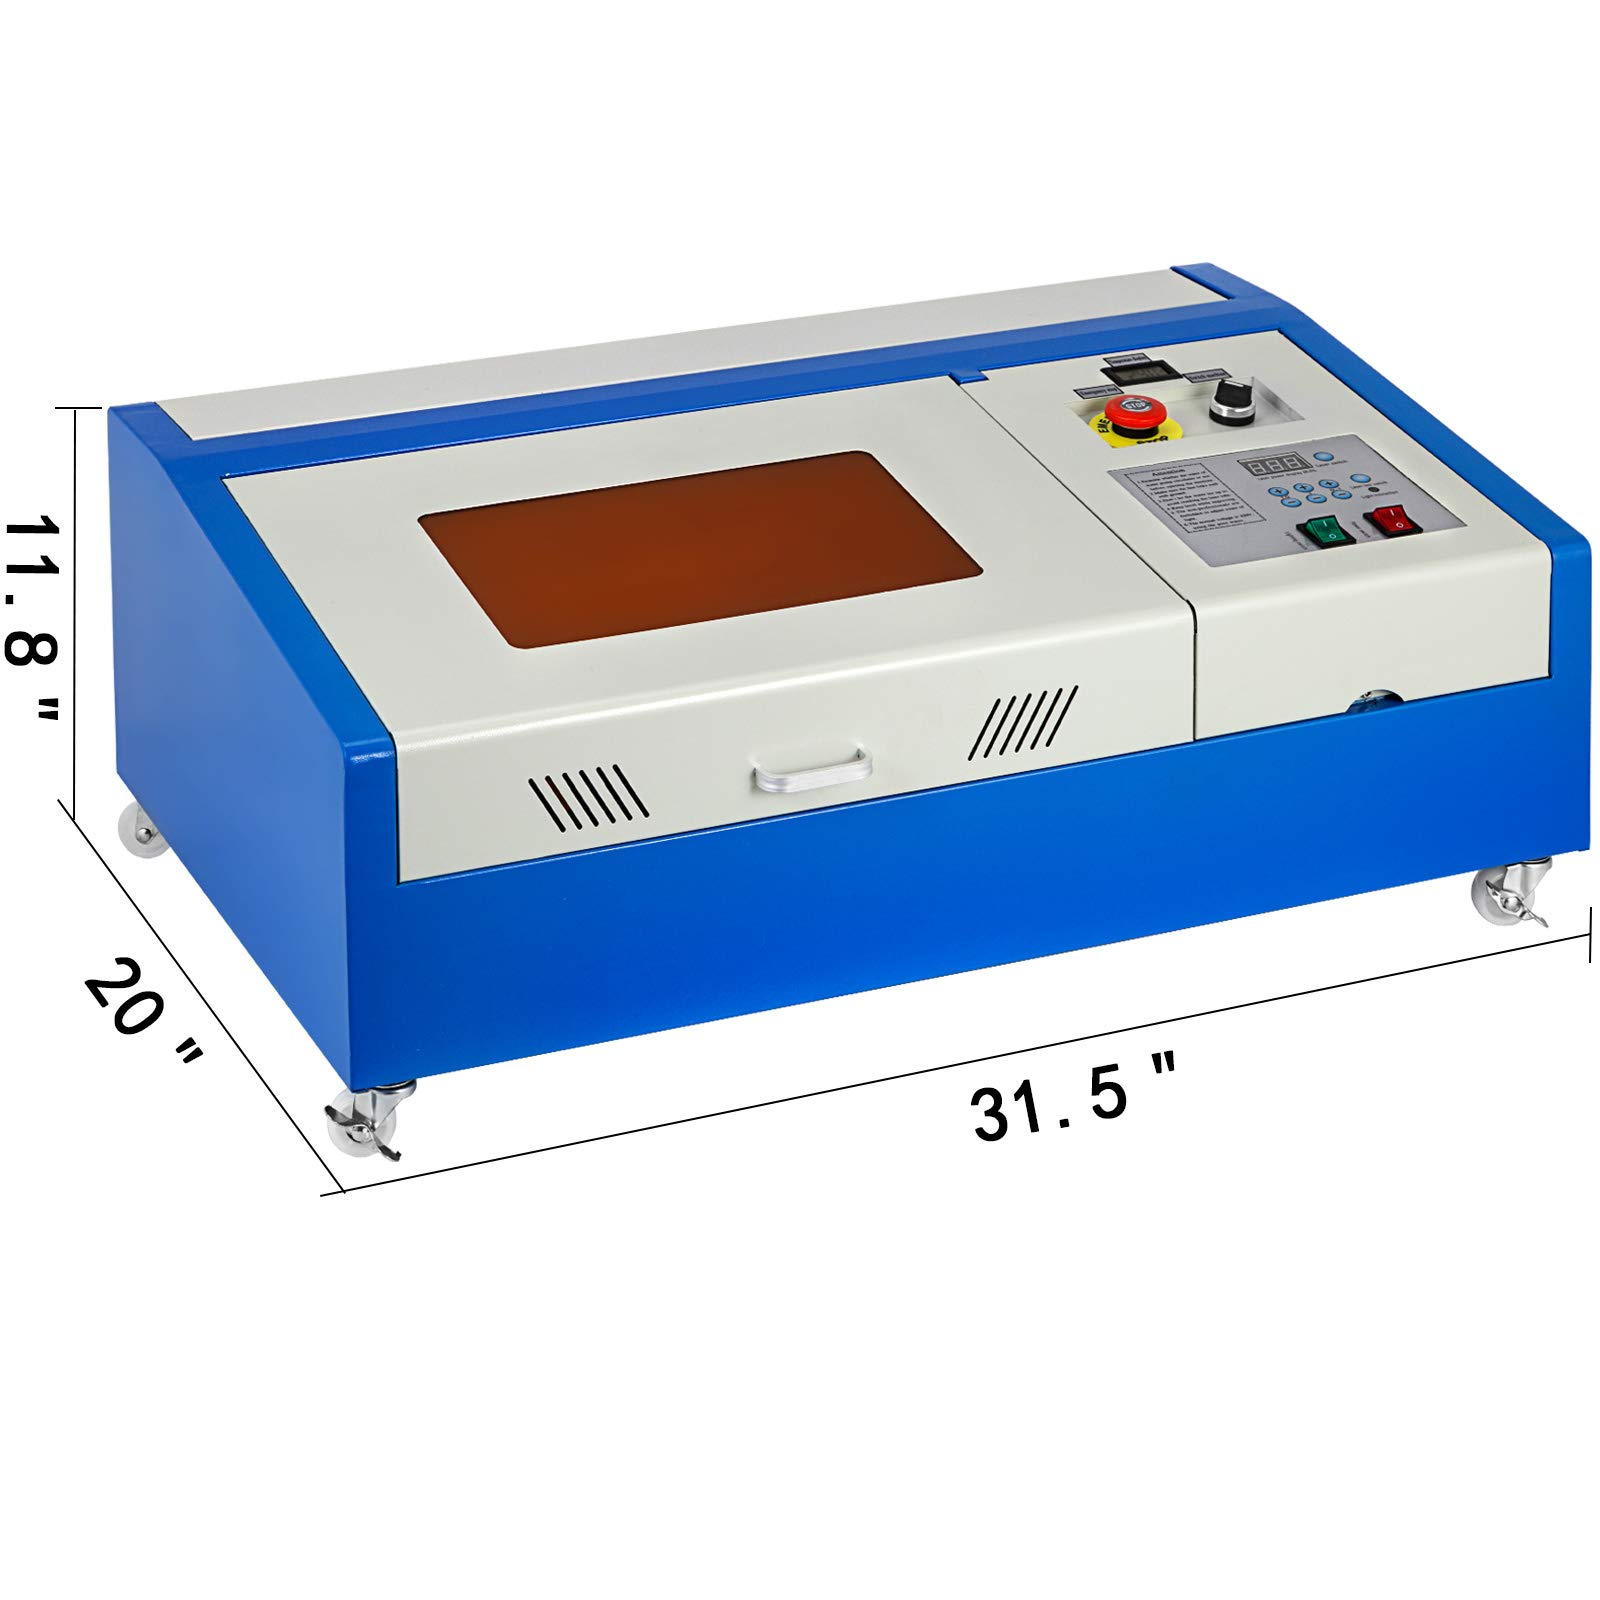 Mophorn Laser Engraving Machine 40W CO2 Laser Engraver 12x8 Inch Laser Cutting Machine USB Port LCD Display with Rotate Wheels(40W 300x200) by Mophorn (Image #3)